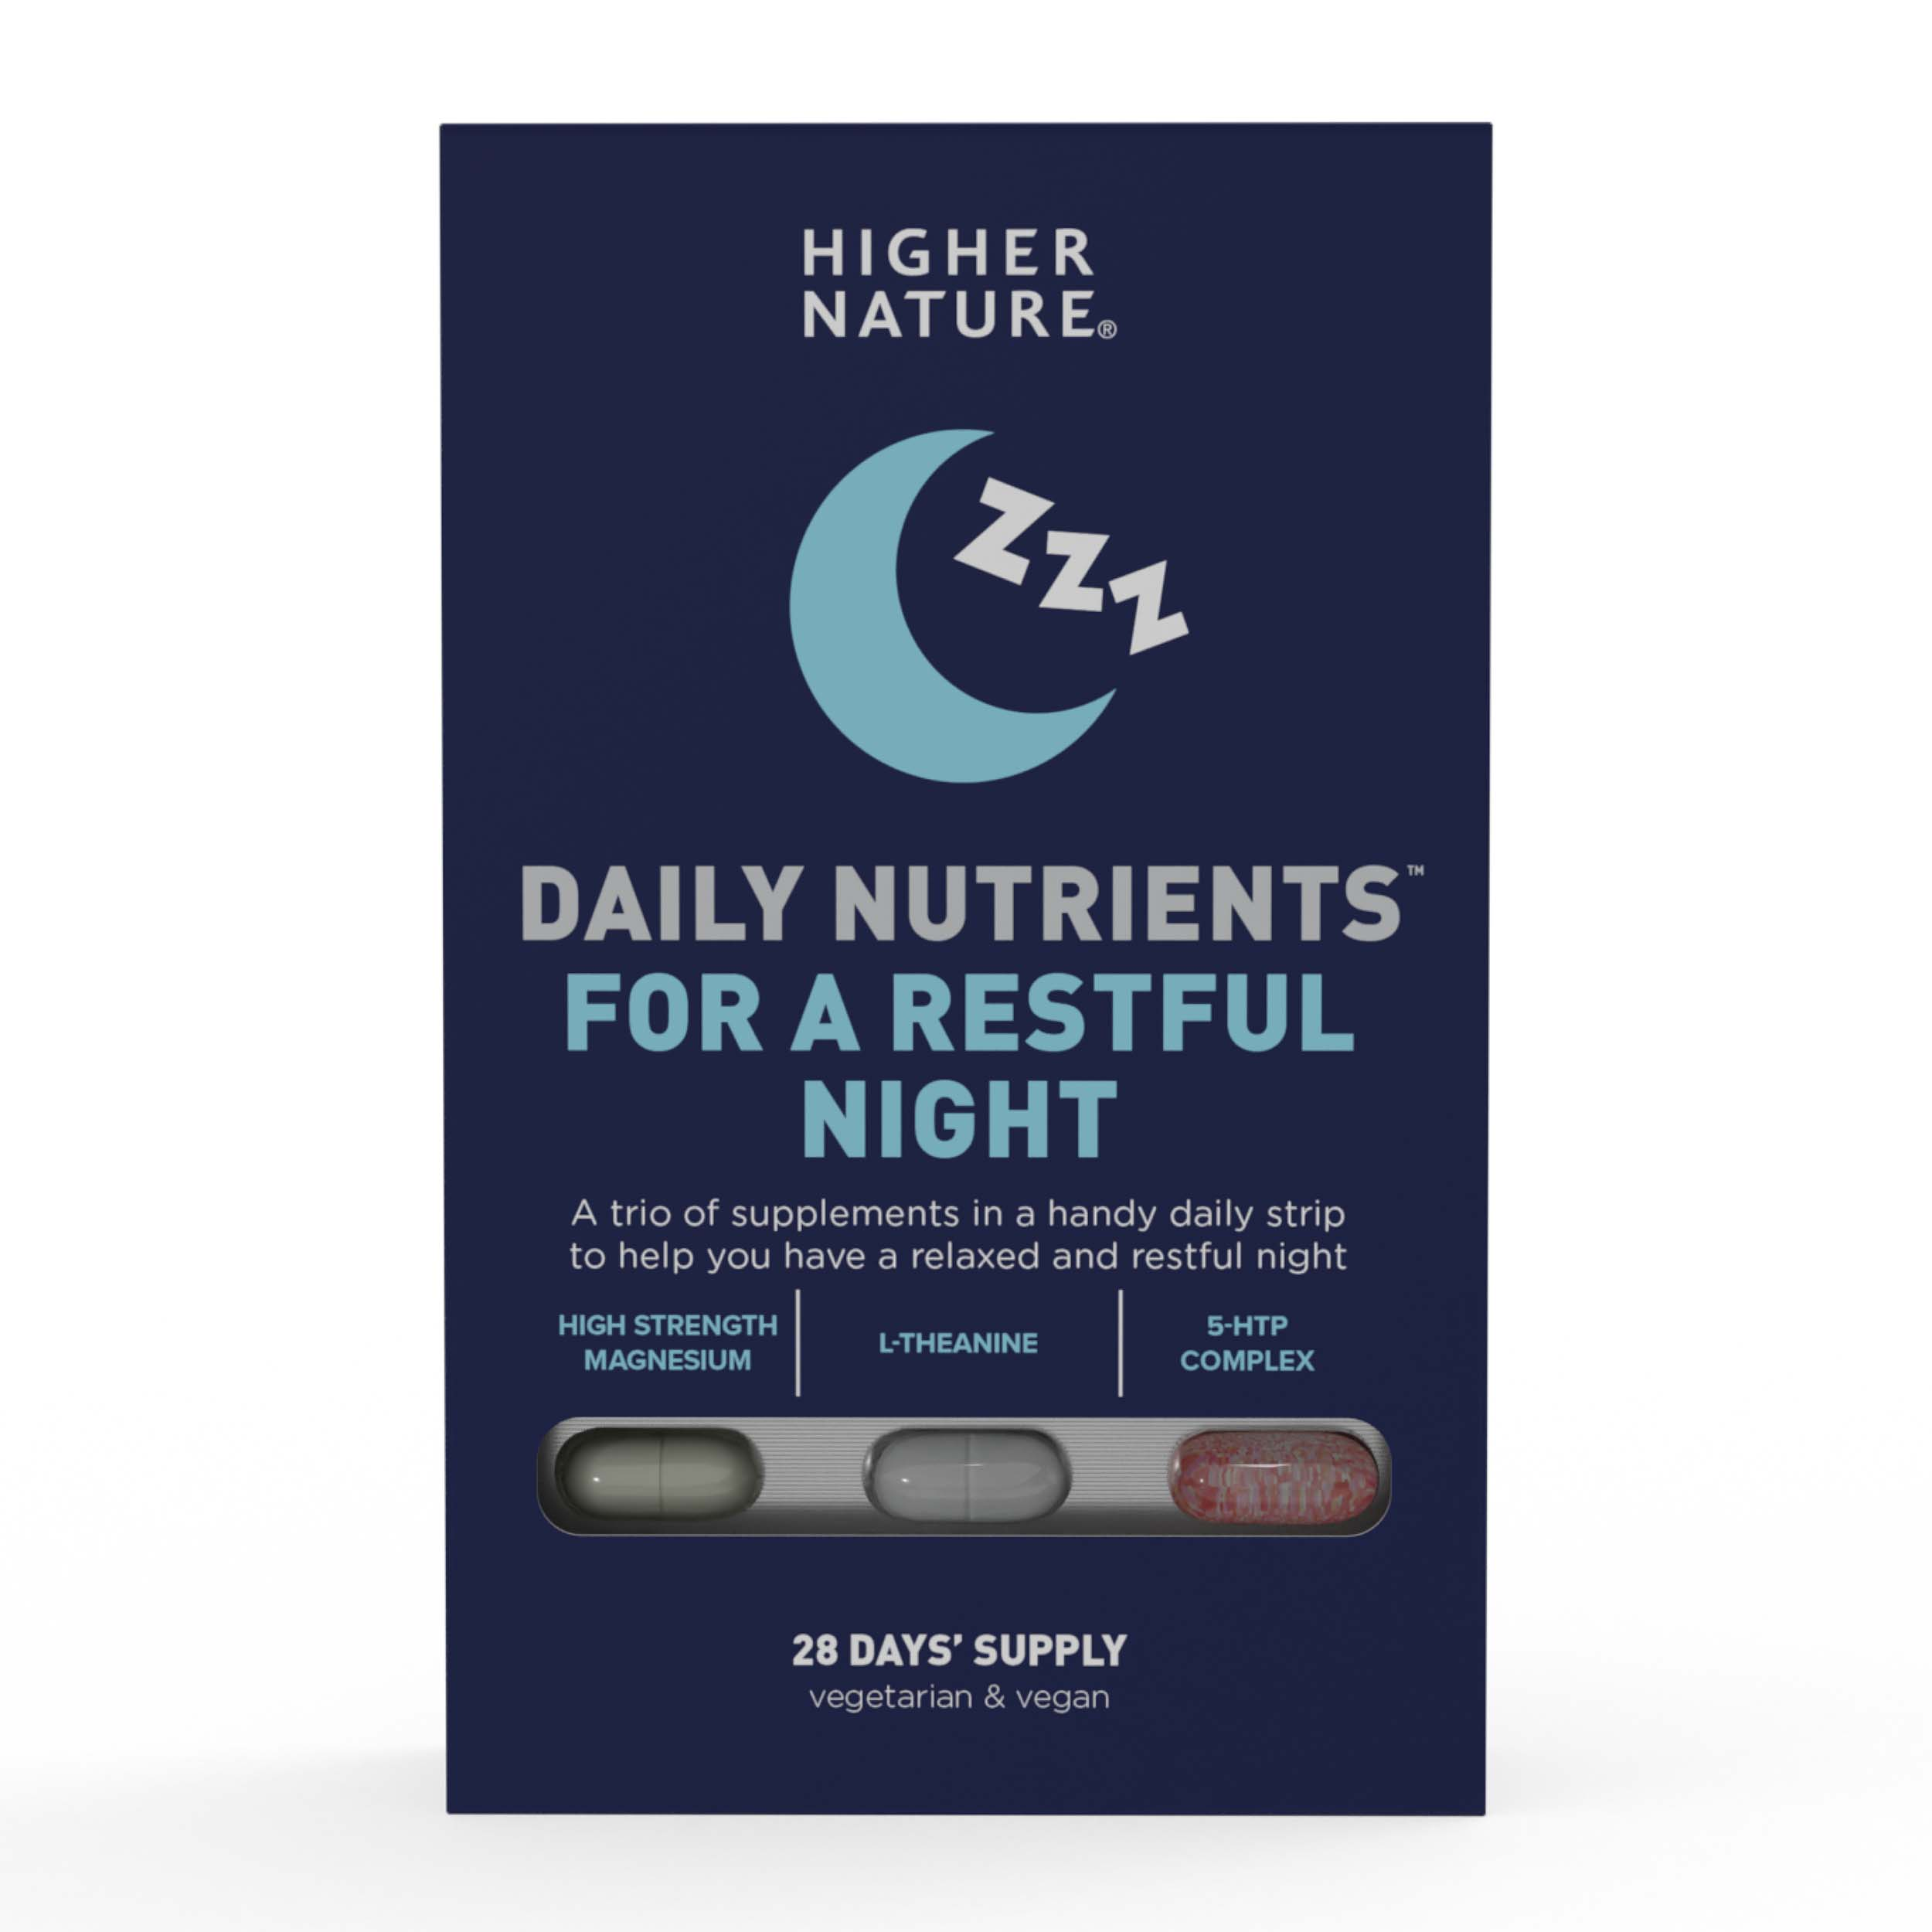 Daily Nutrients For A Restful Night 28 Days Supply